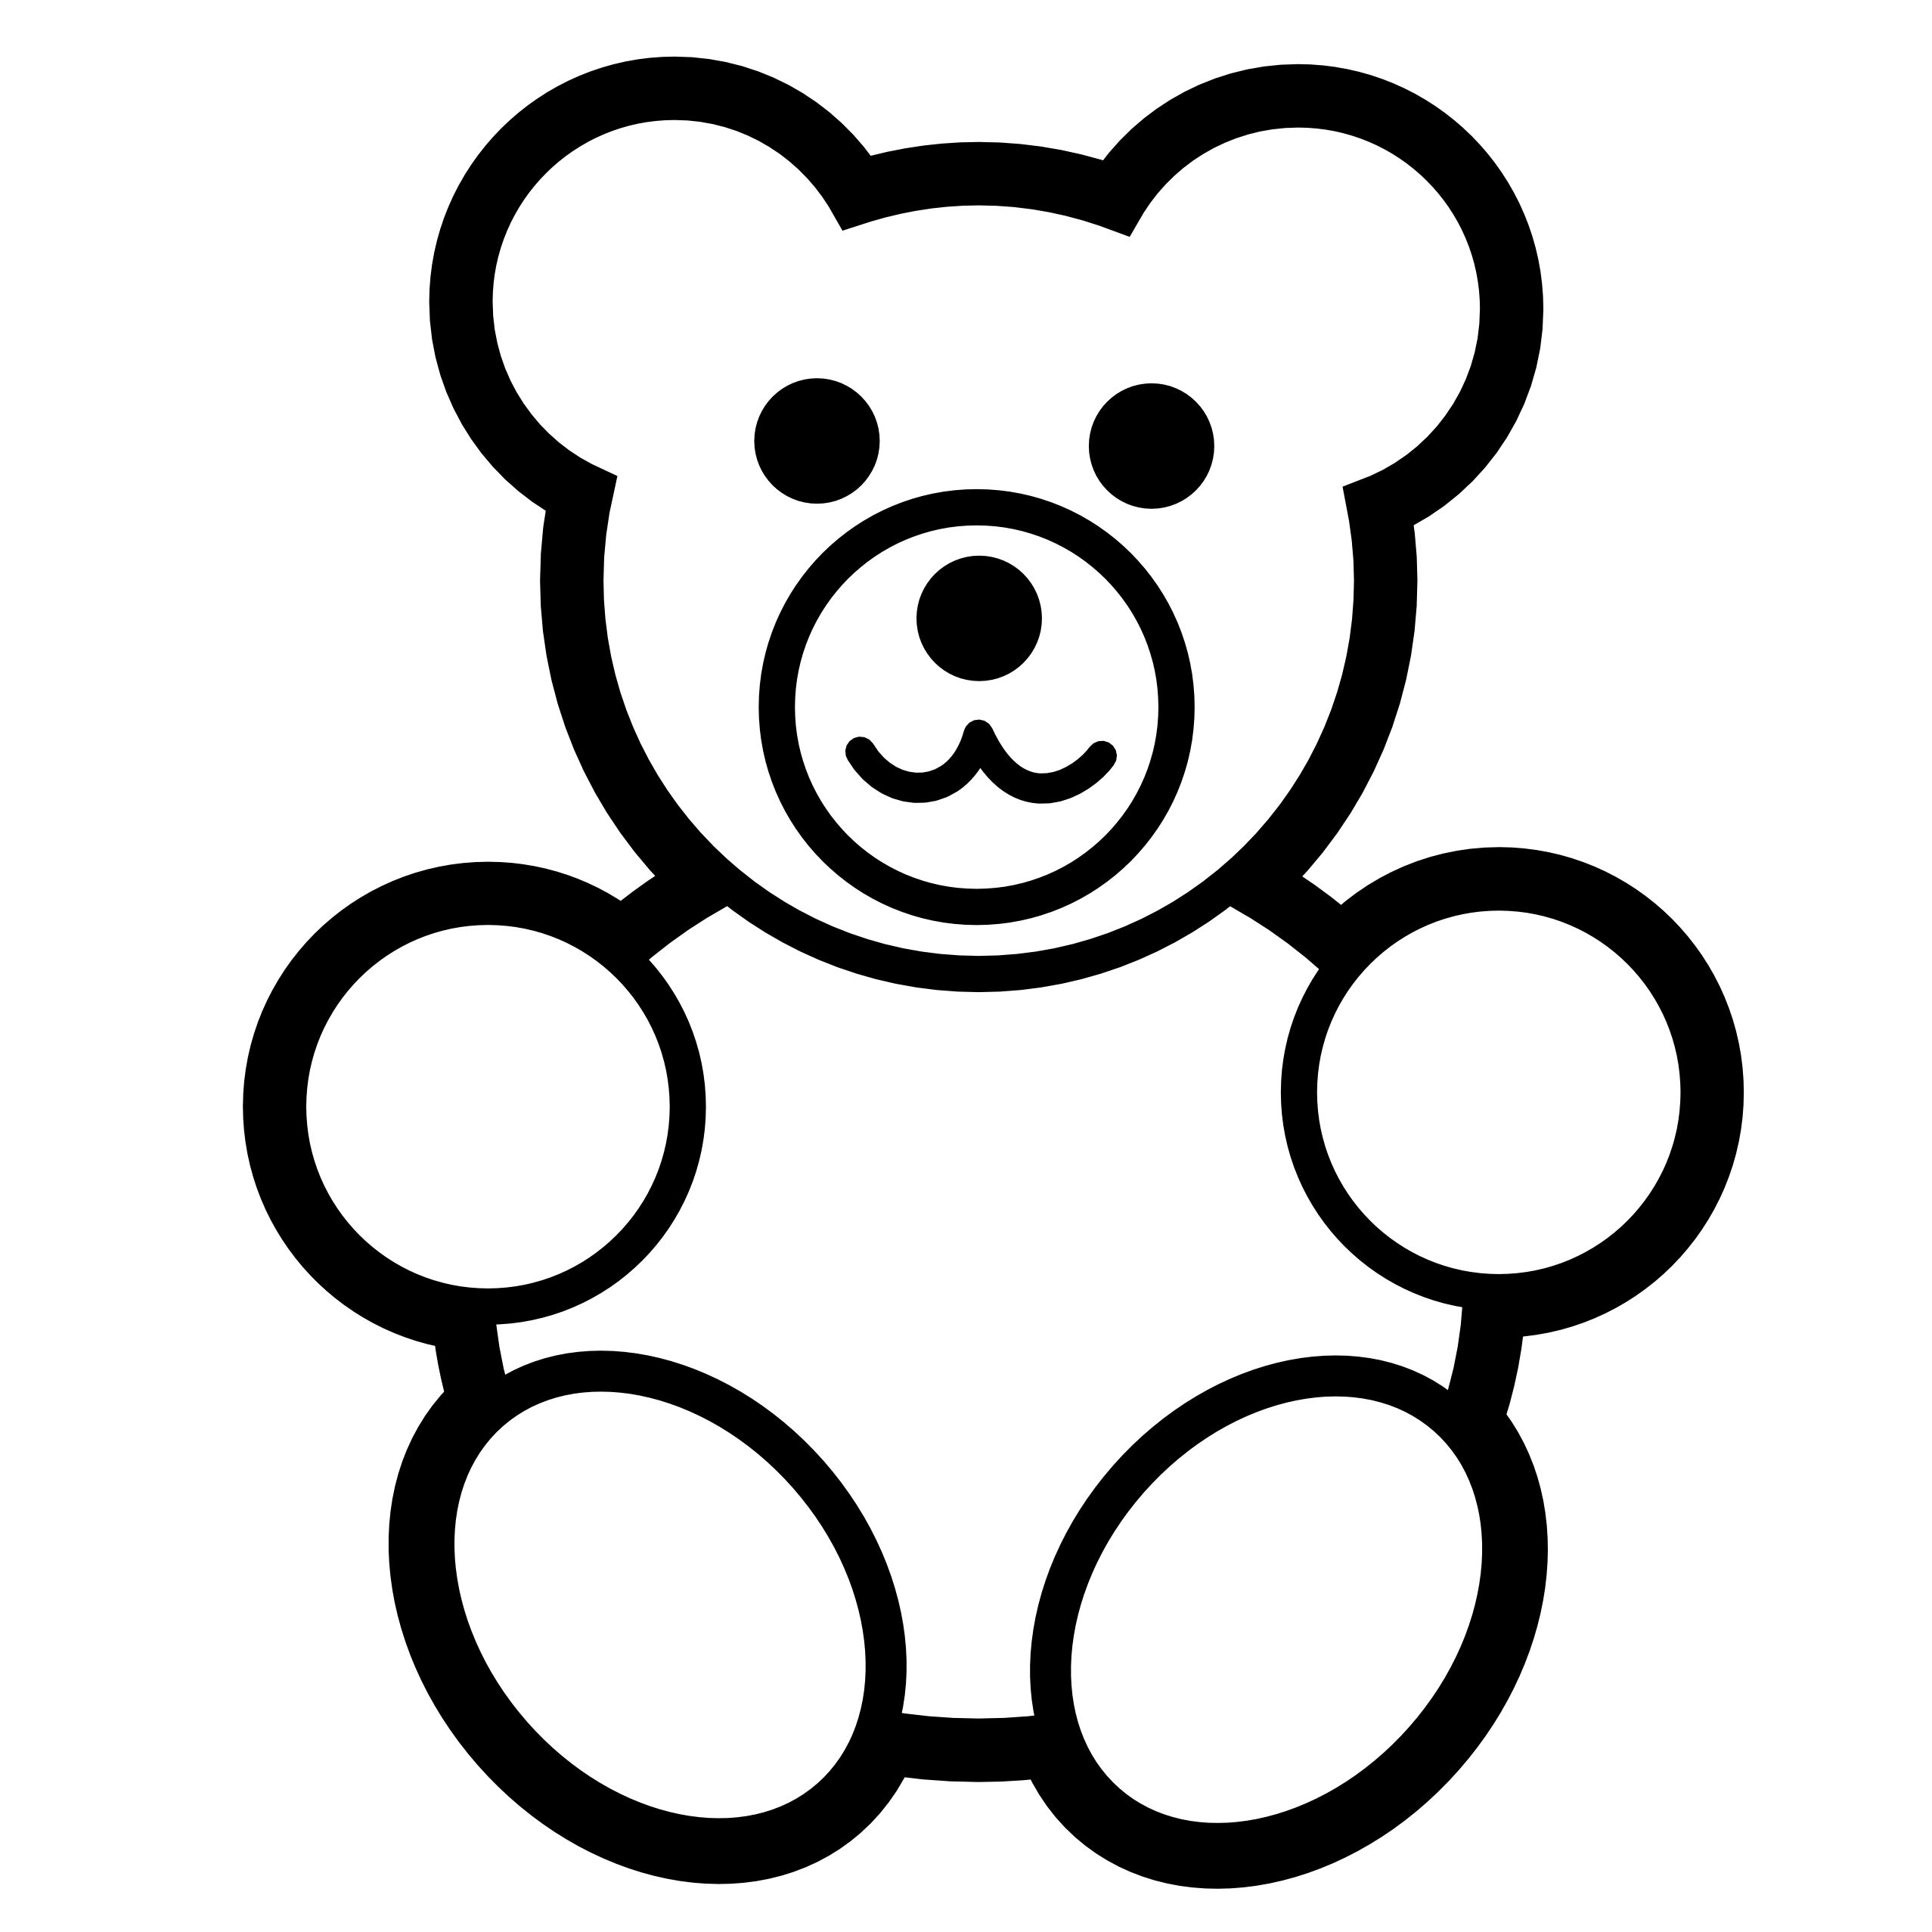 Teddy bear stencil idea. Infant clipart black and white